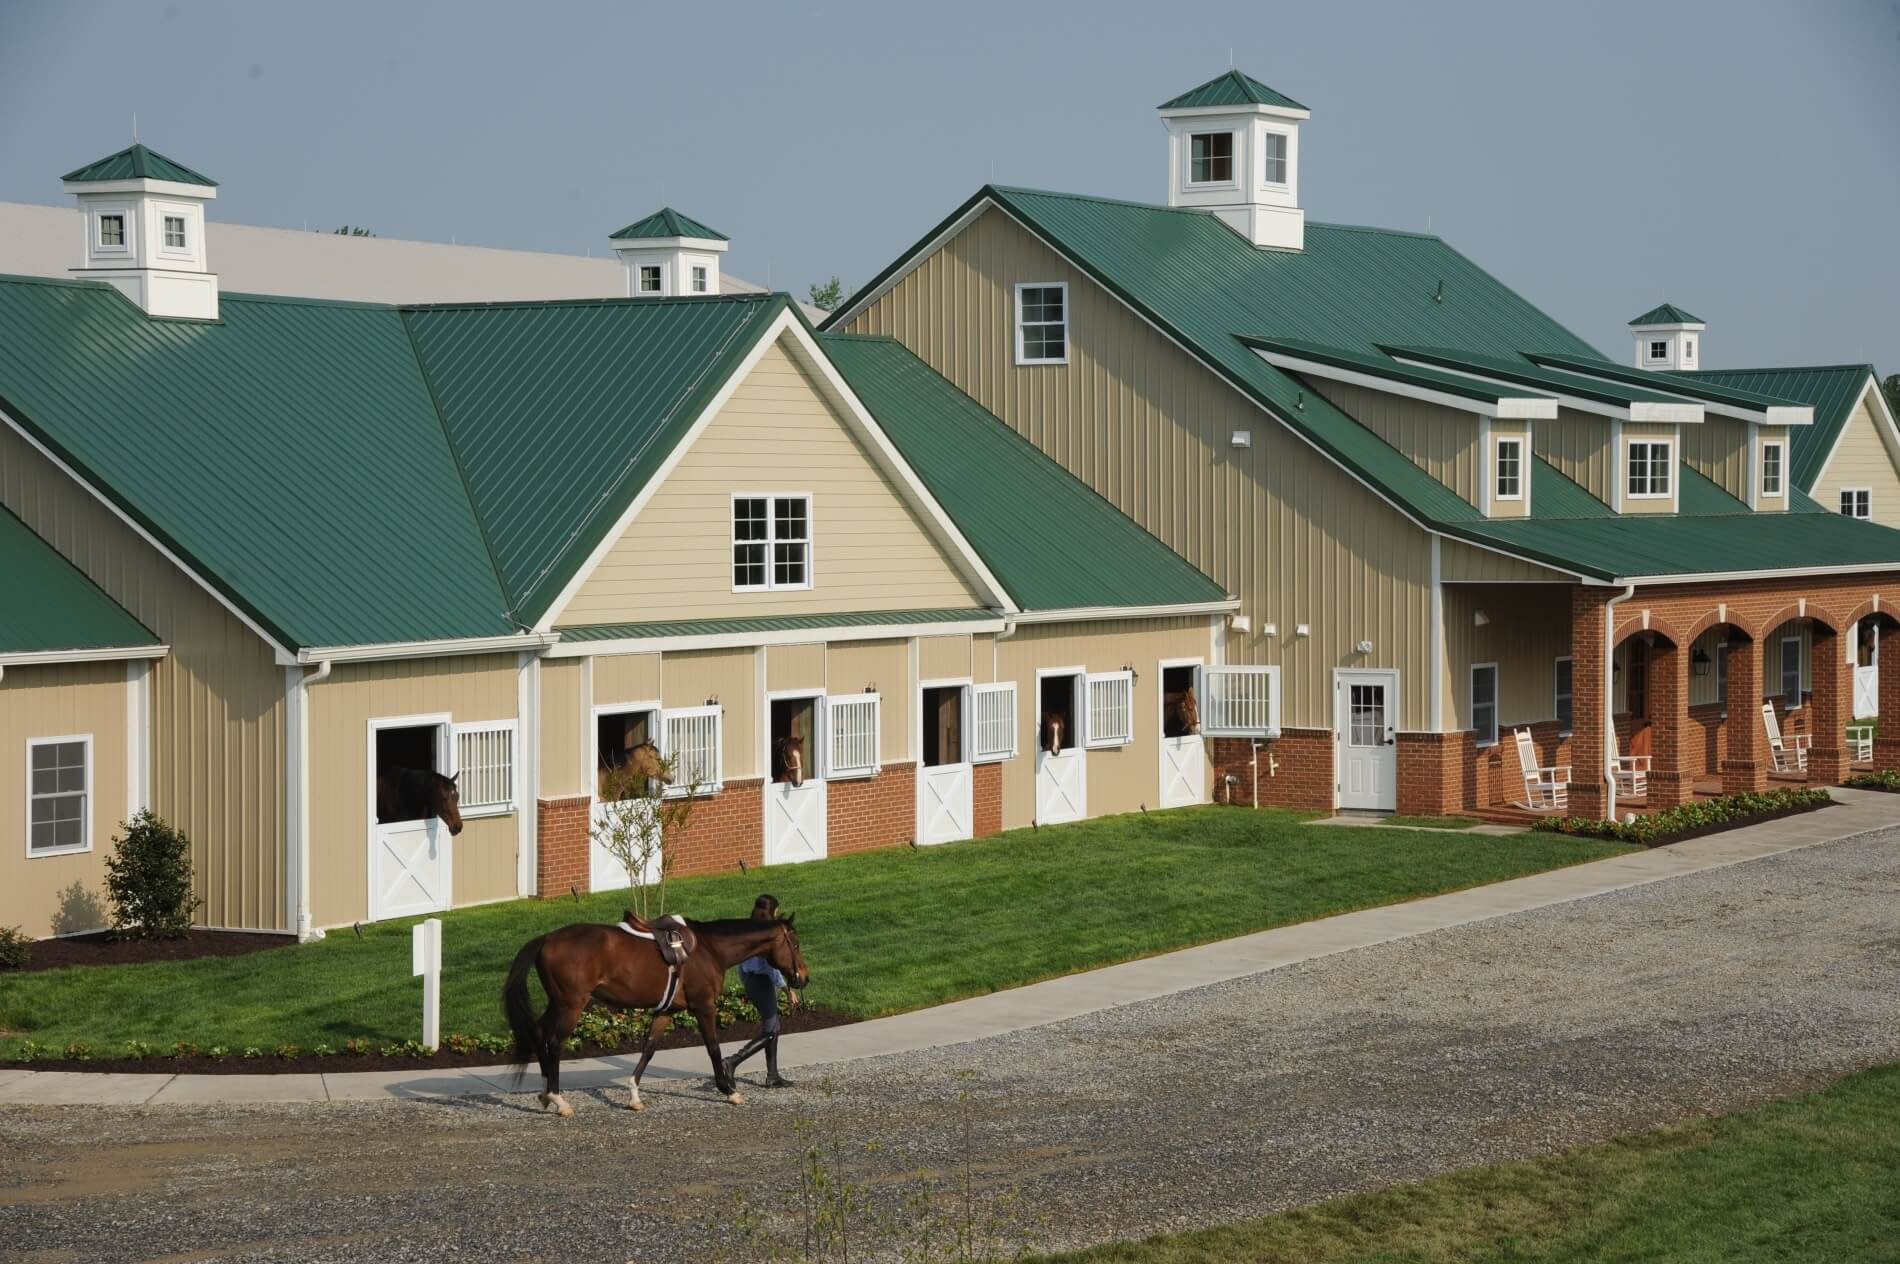 Exposed Fastener Panels specified and installed as roofing and most of the walls at award winning equestrian community facility